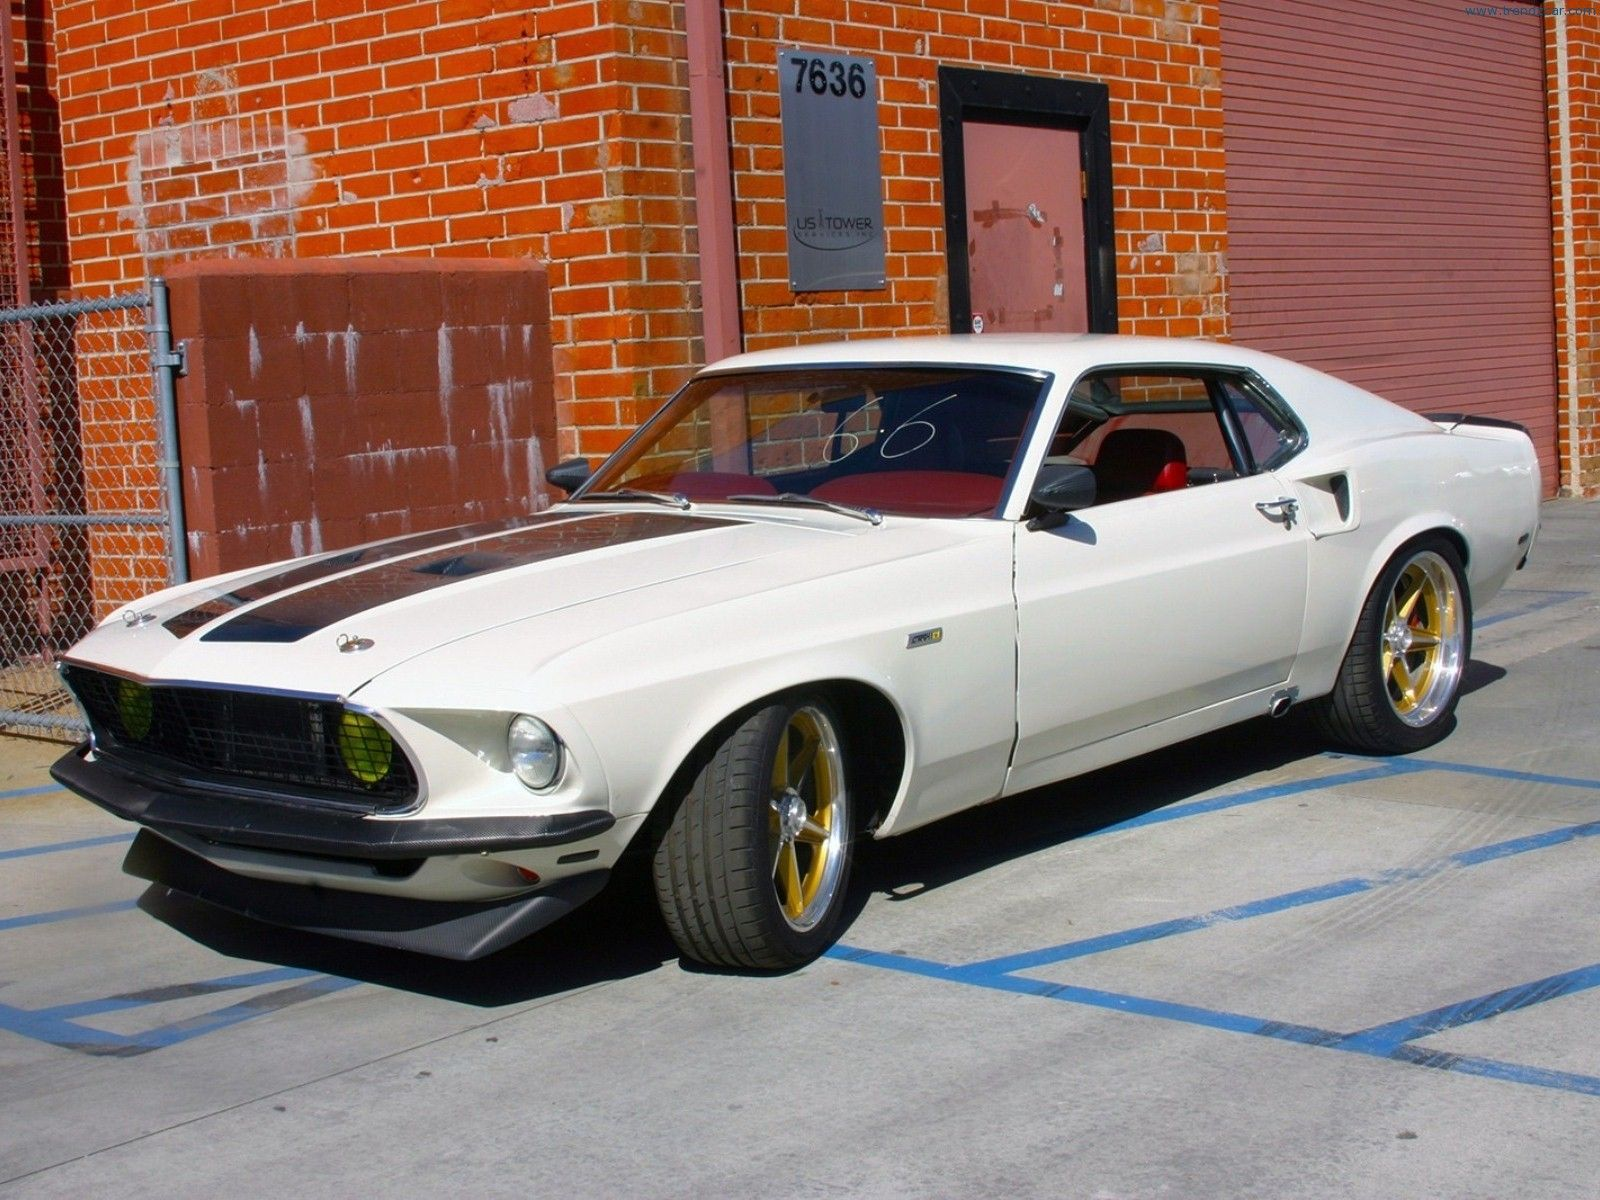 Ford Mustang 1969 Fast And Furious 6